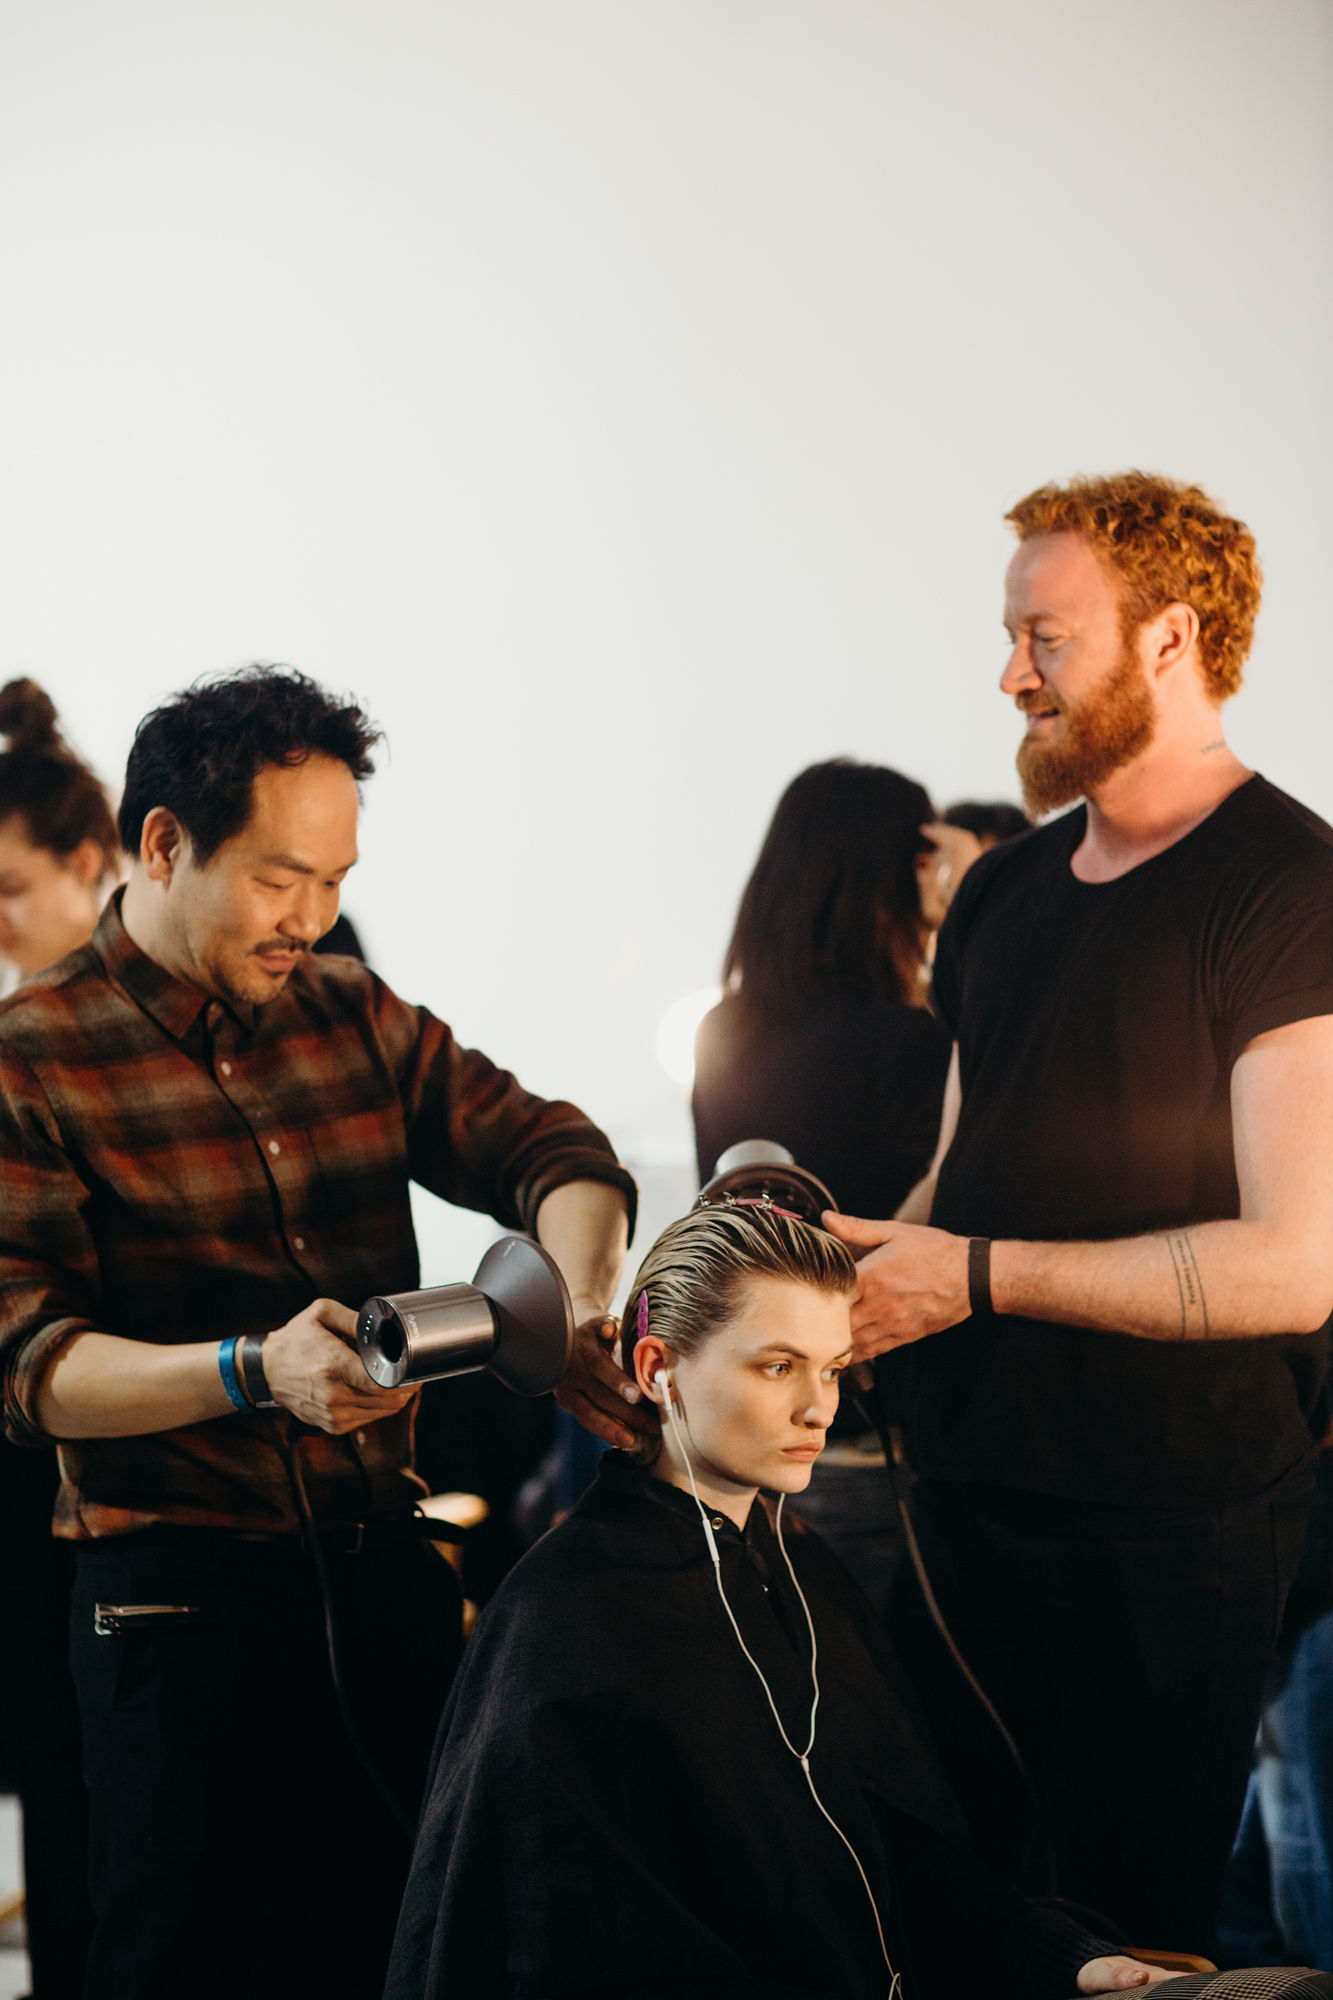 Behind the scenes at Helmut Lang F/W 2019, sponsored by Oribe Hair Care and Dyson. Here Kien Hoang and Adam Livermore use Oribe Hair Care and a Dyson Supersonic Professional dryer to create a fresh silhouette.